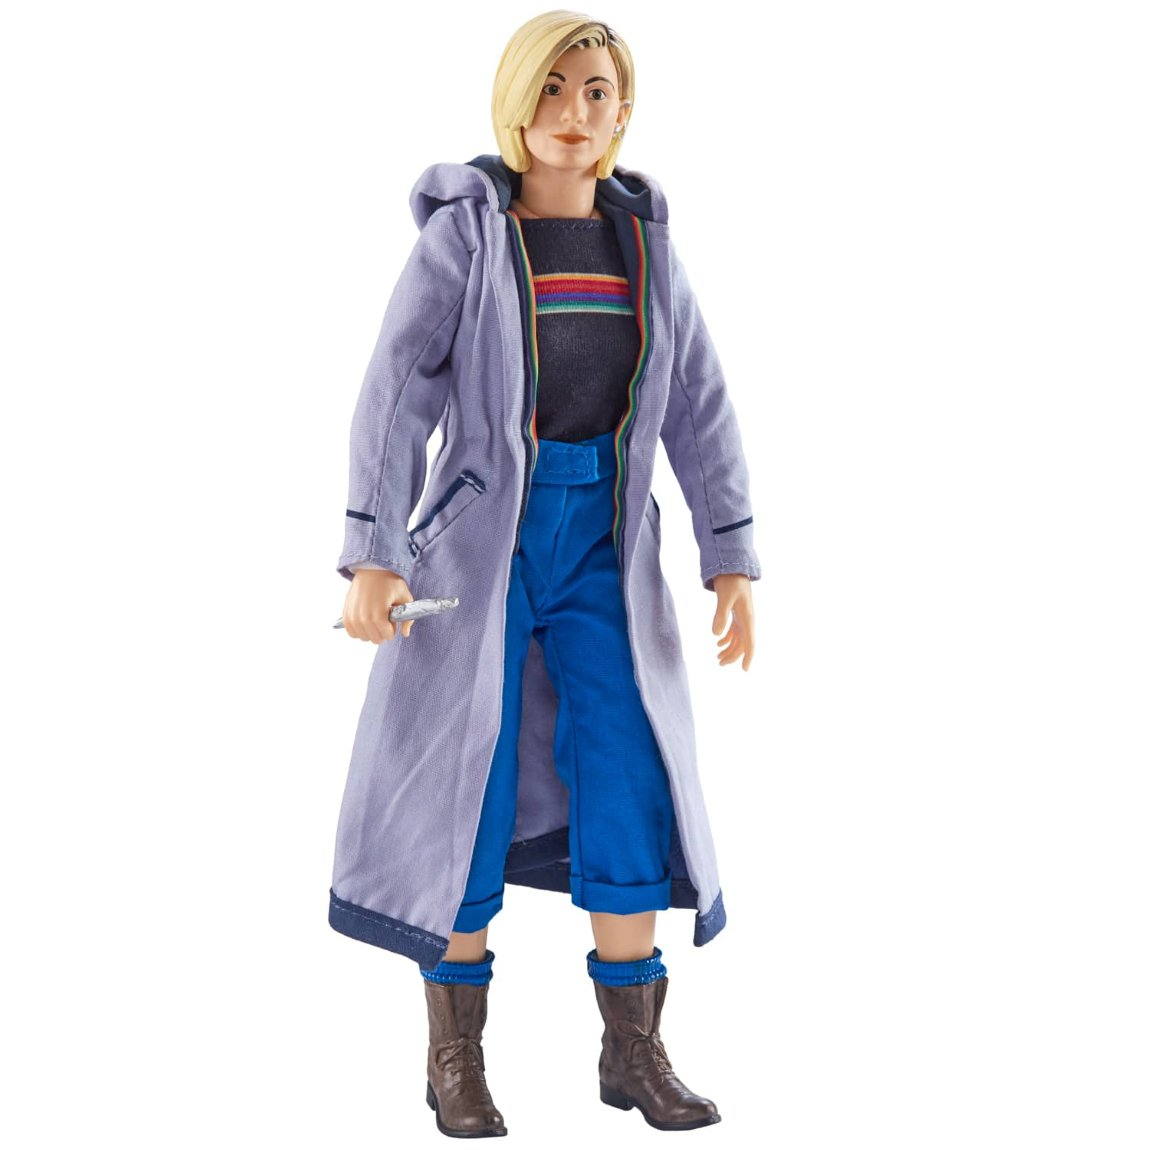 Doctor Who Collectible Action Figure - 13th Doctor